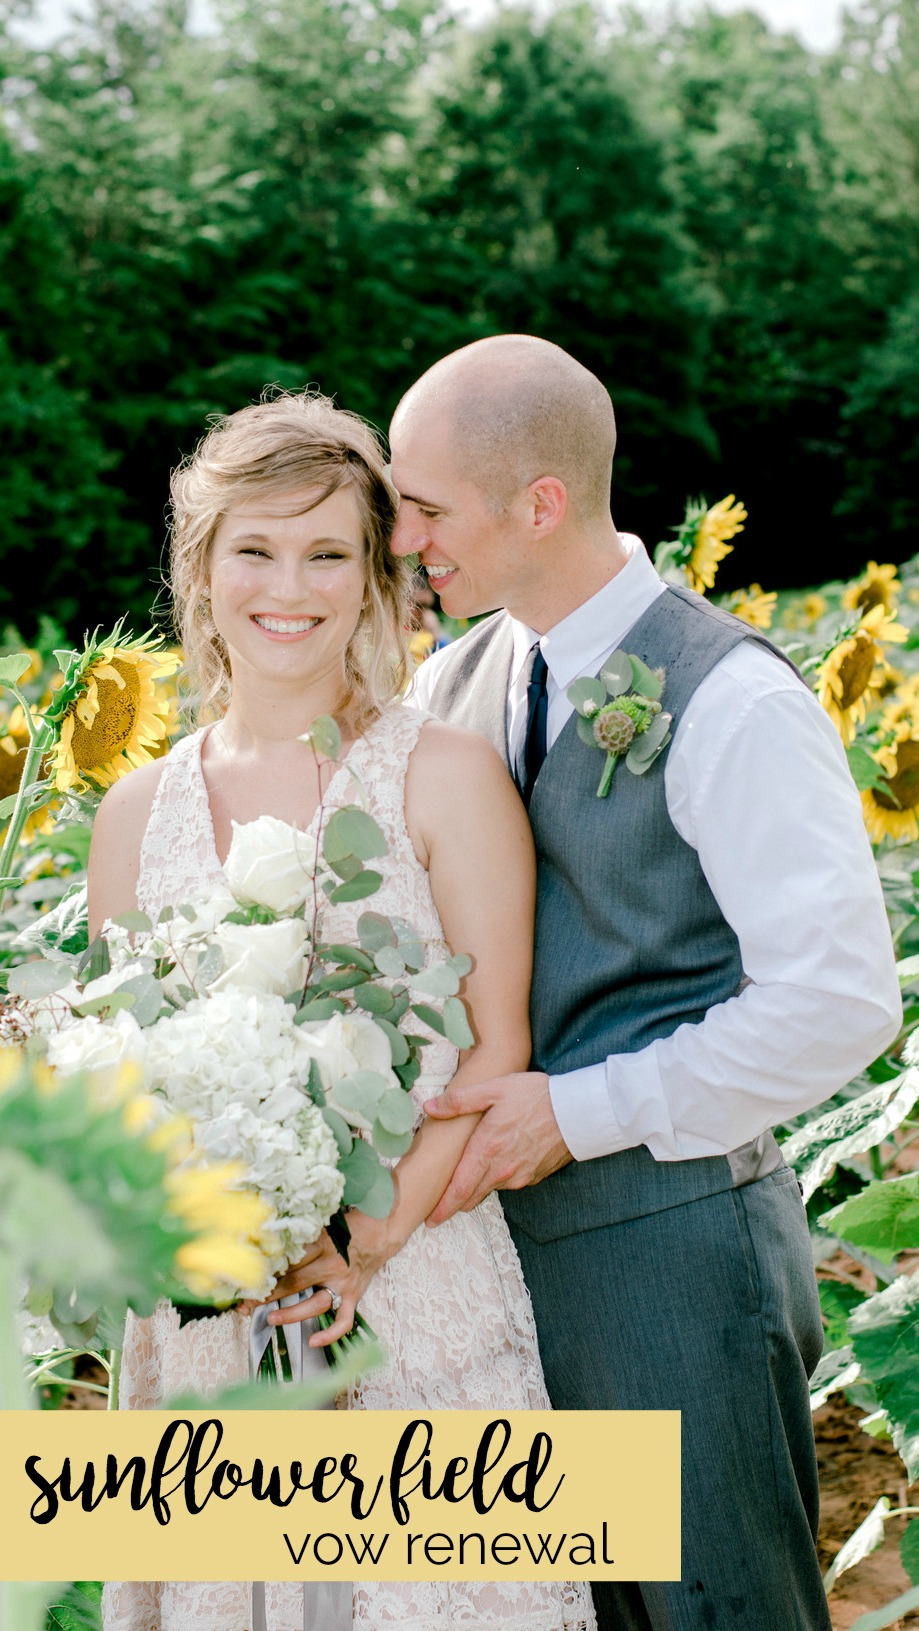 Lauren and Chris: Sunflower Farm Wedding and Surprise Vow Renewal   Palmetto State Weddings   Jessica Drew Photography   South Carolina weddings   outdoor wedding inspiration